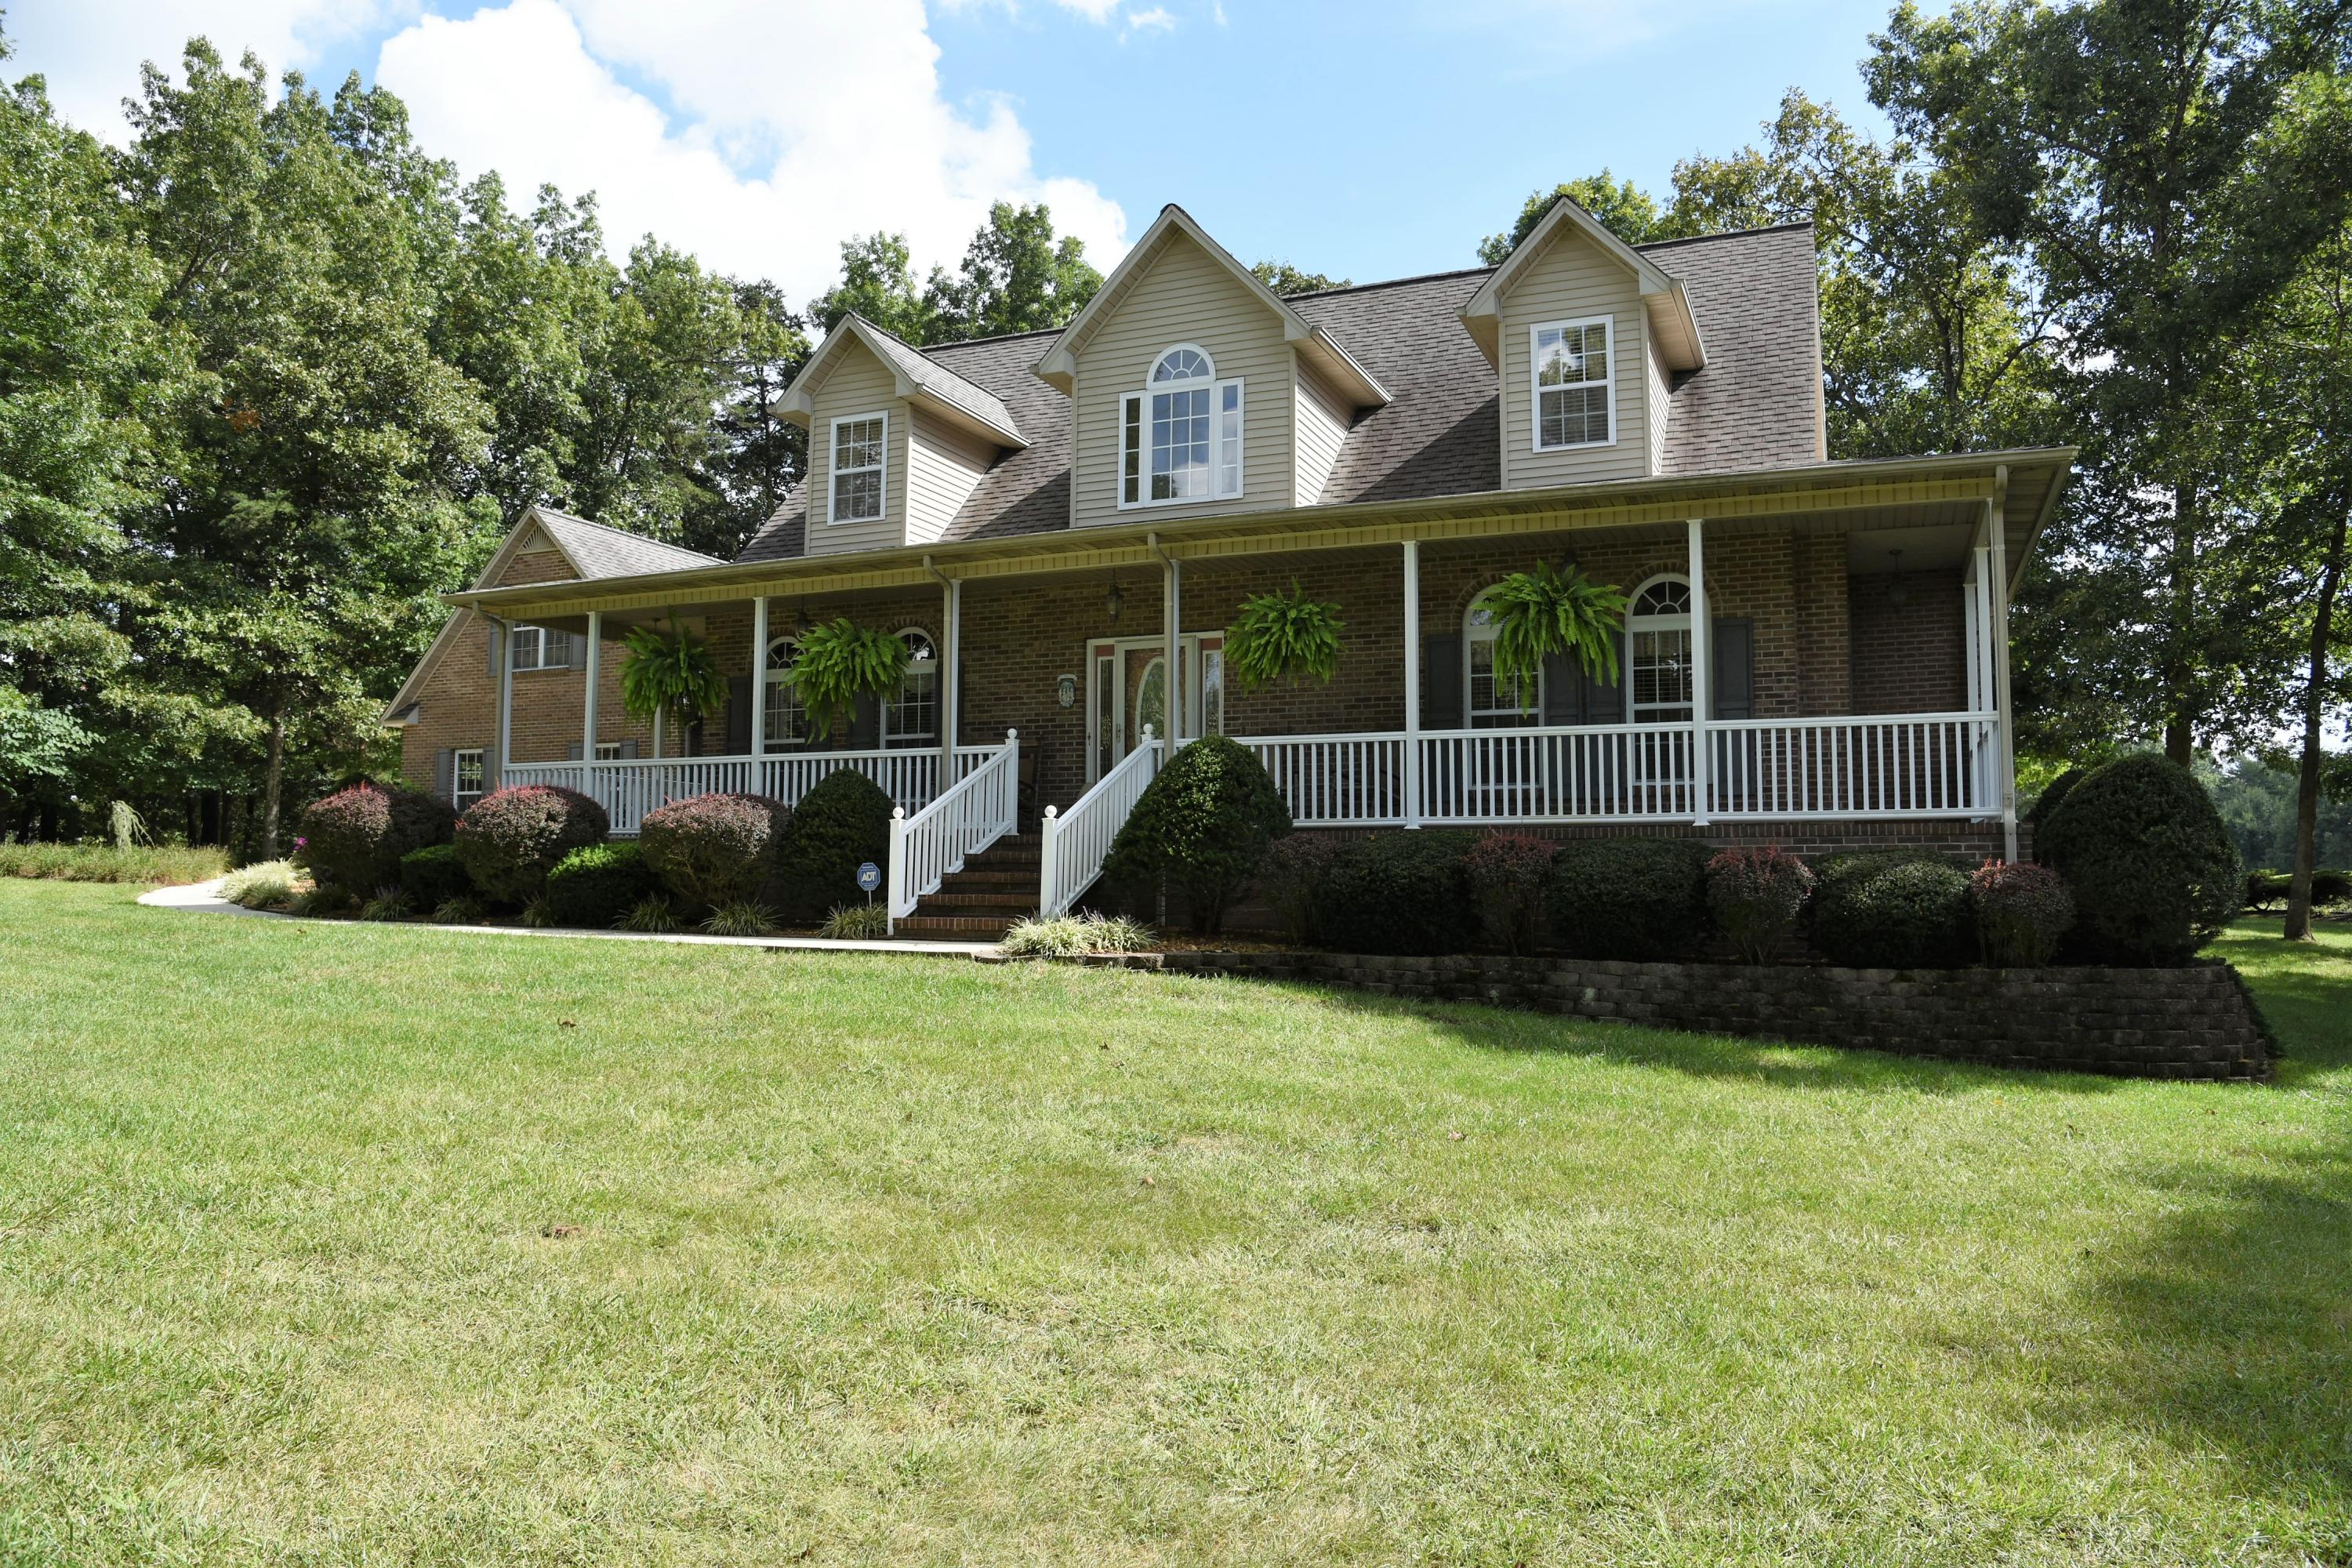 1215 Golf Club Lane, Crossville, TN 38571